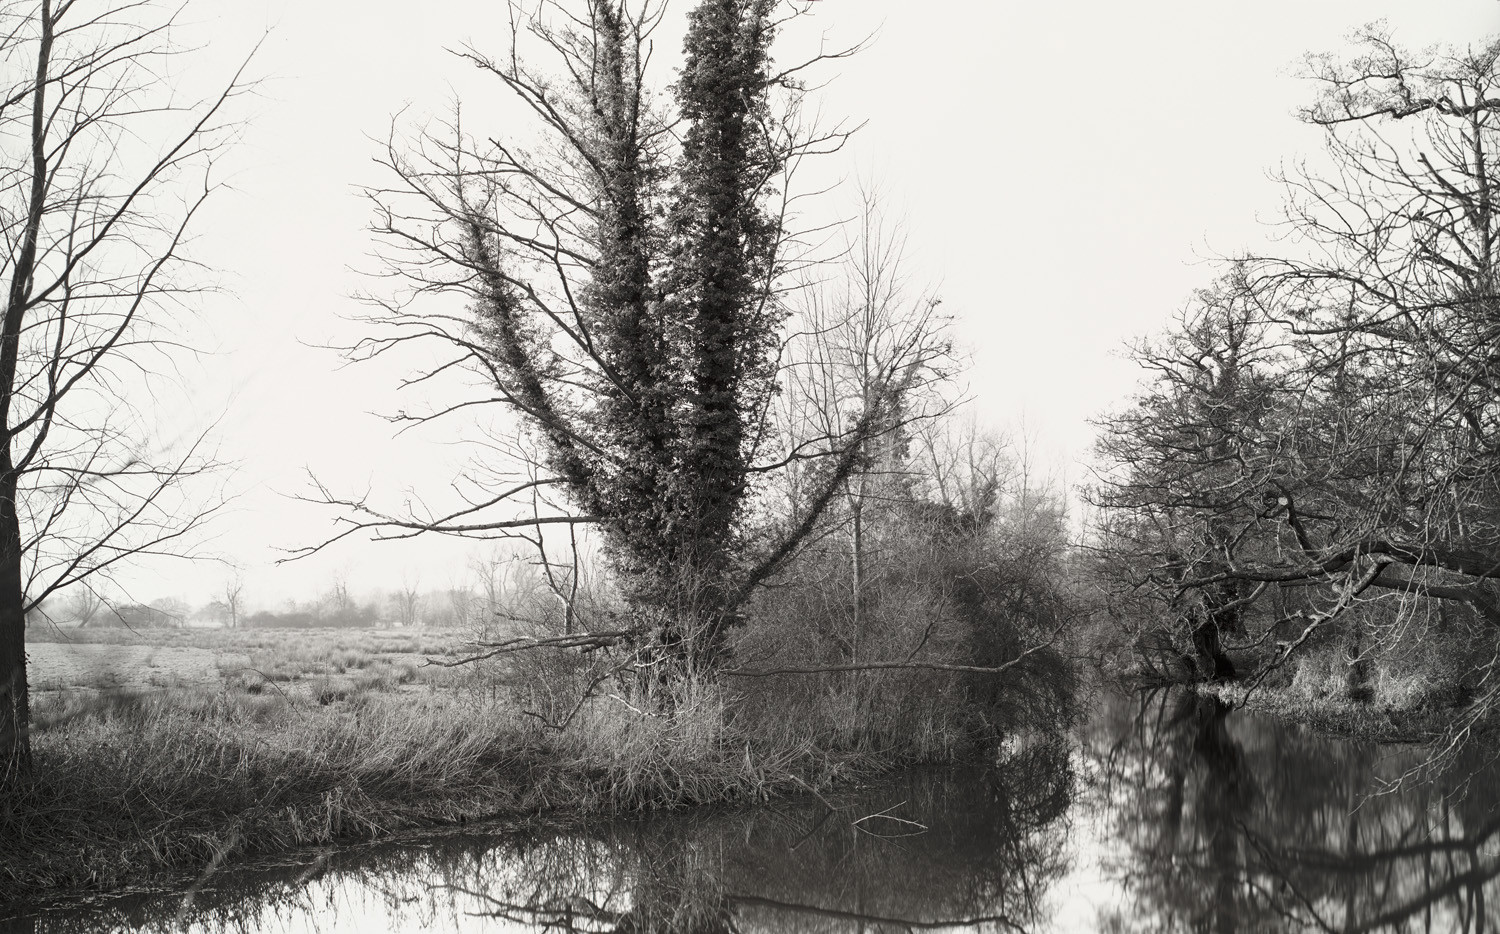 Richard Learoyd, The River Stour from Deadman's Bridge near Flatford (Winter), 2013